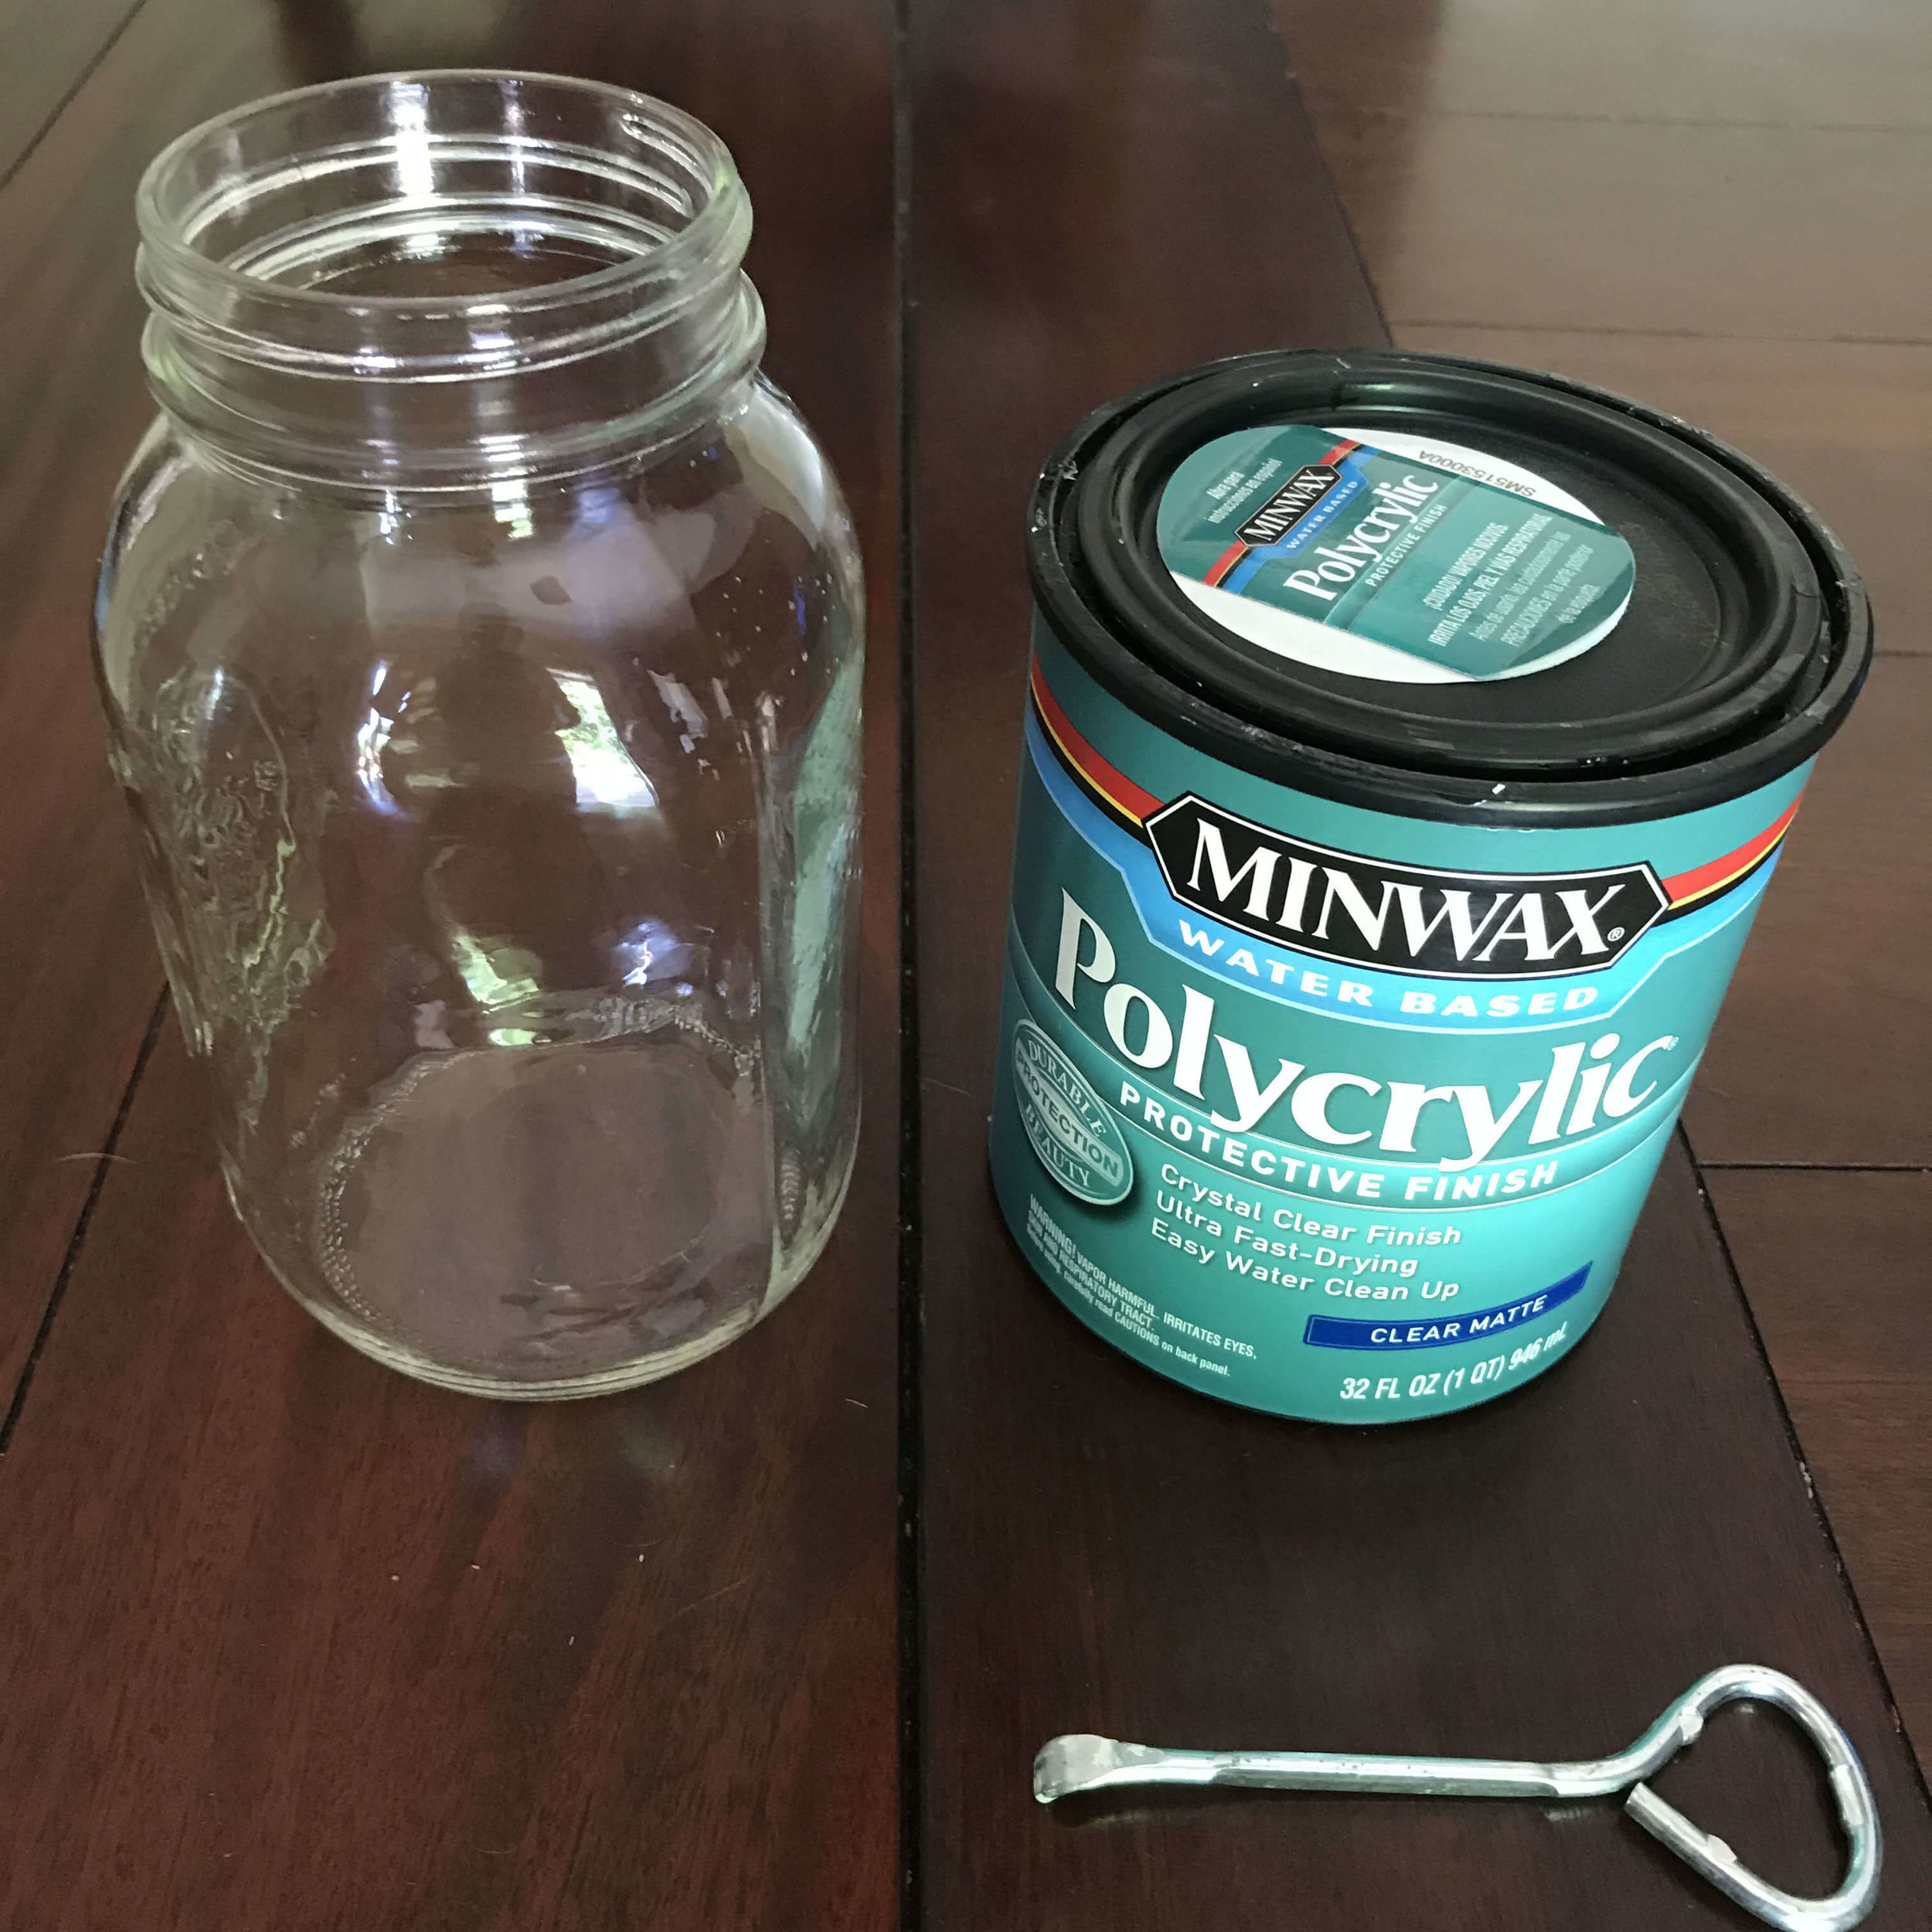 DIY Tissue for Your Issues Mason jar dispenser tutorial #masonjar #tissueforyourissues #masonjarcrafts #handmadegifts